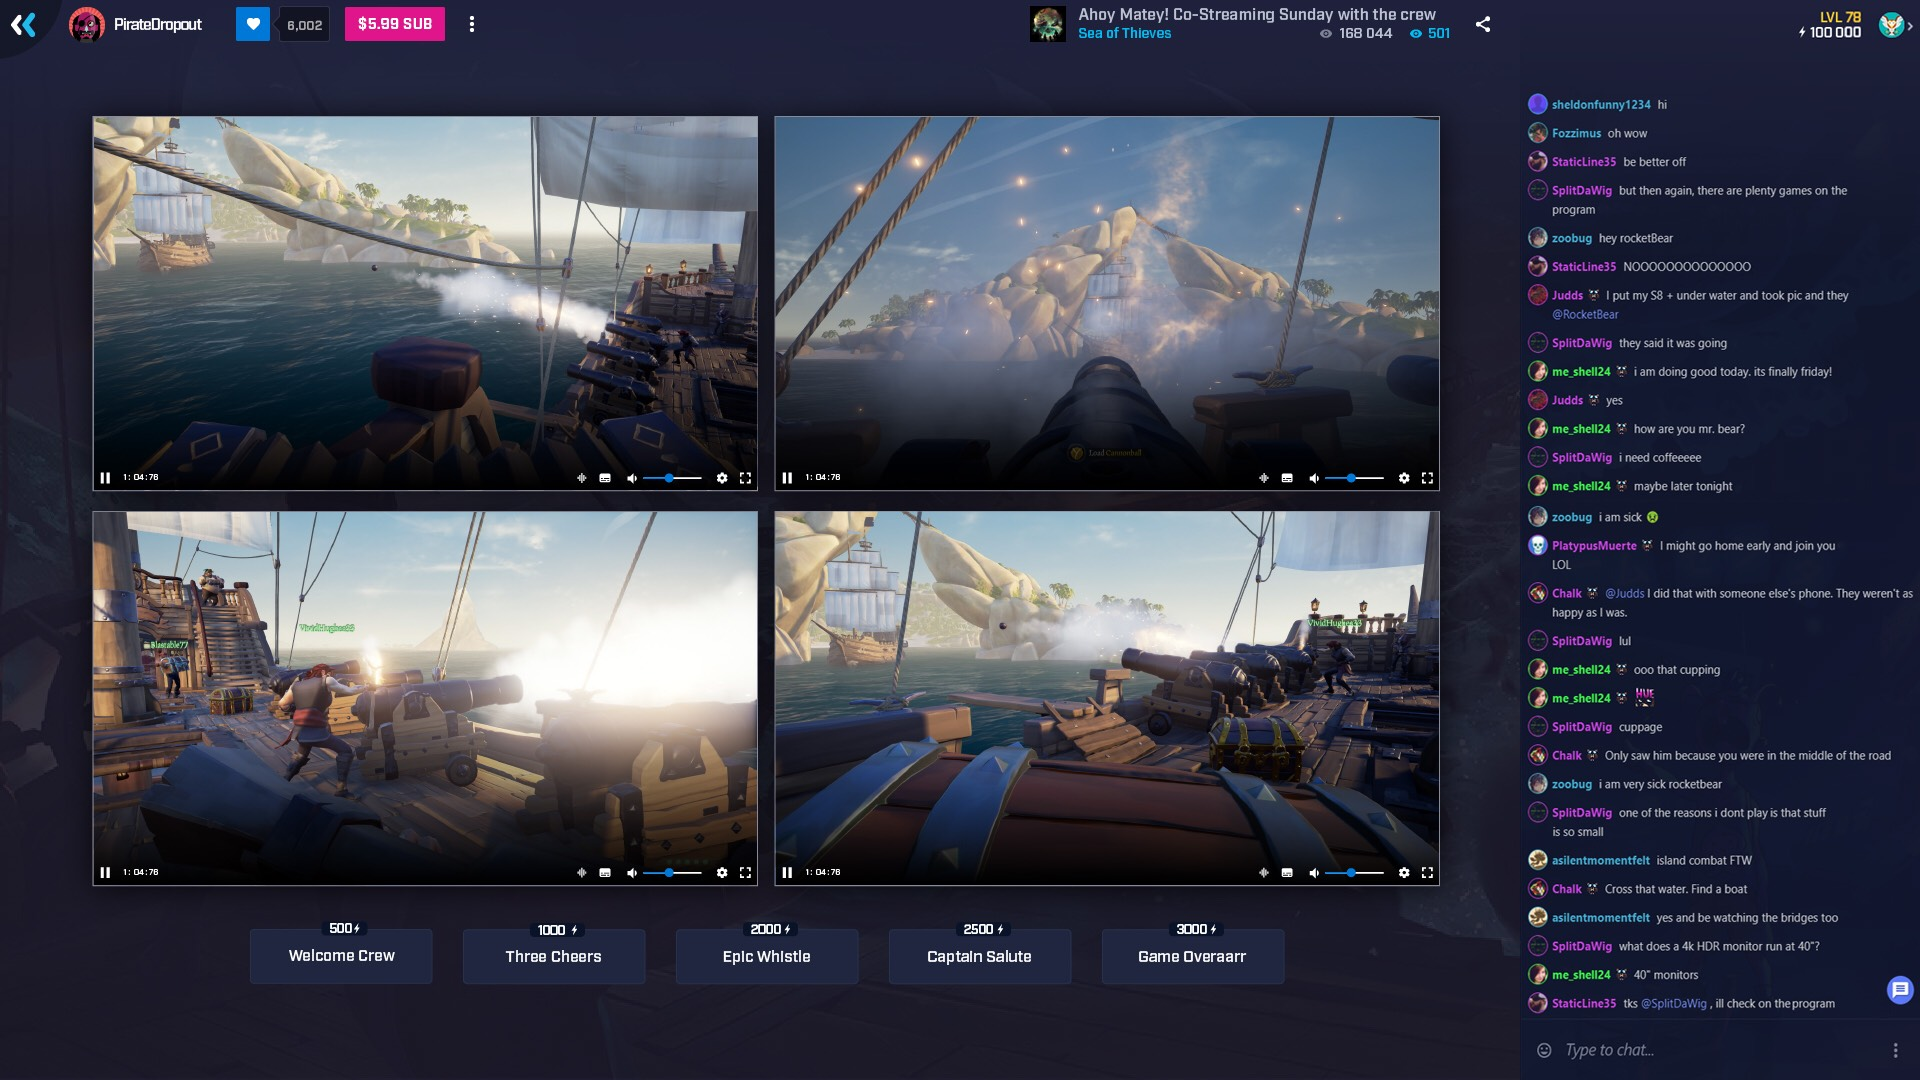 Microsoft's Twitch competitor rebrands as Mixer, makes moves for mobile